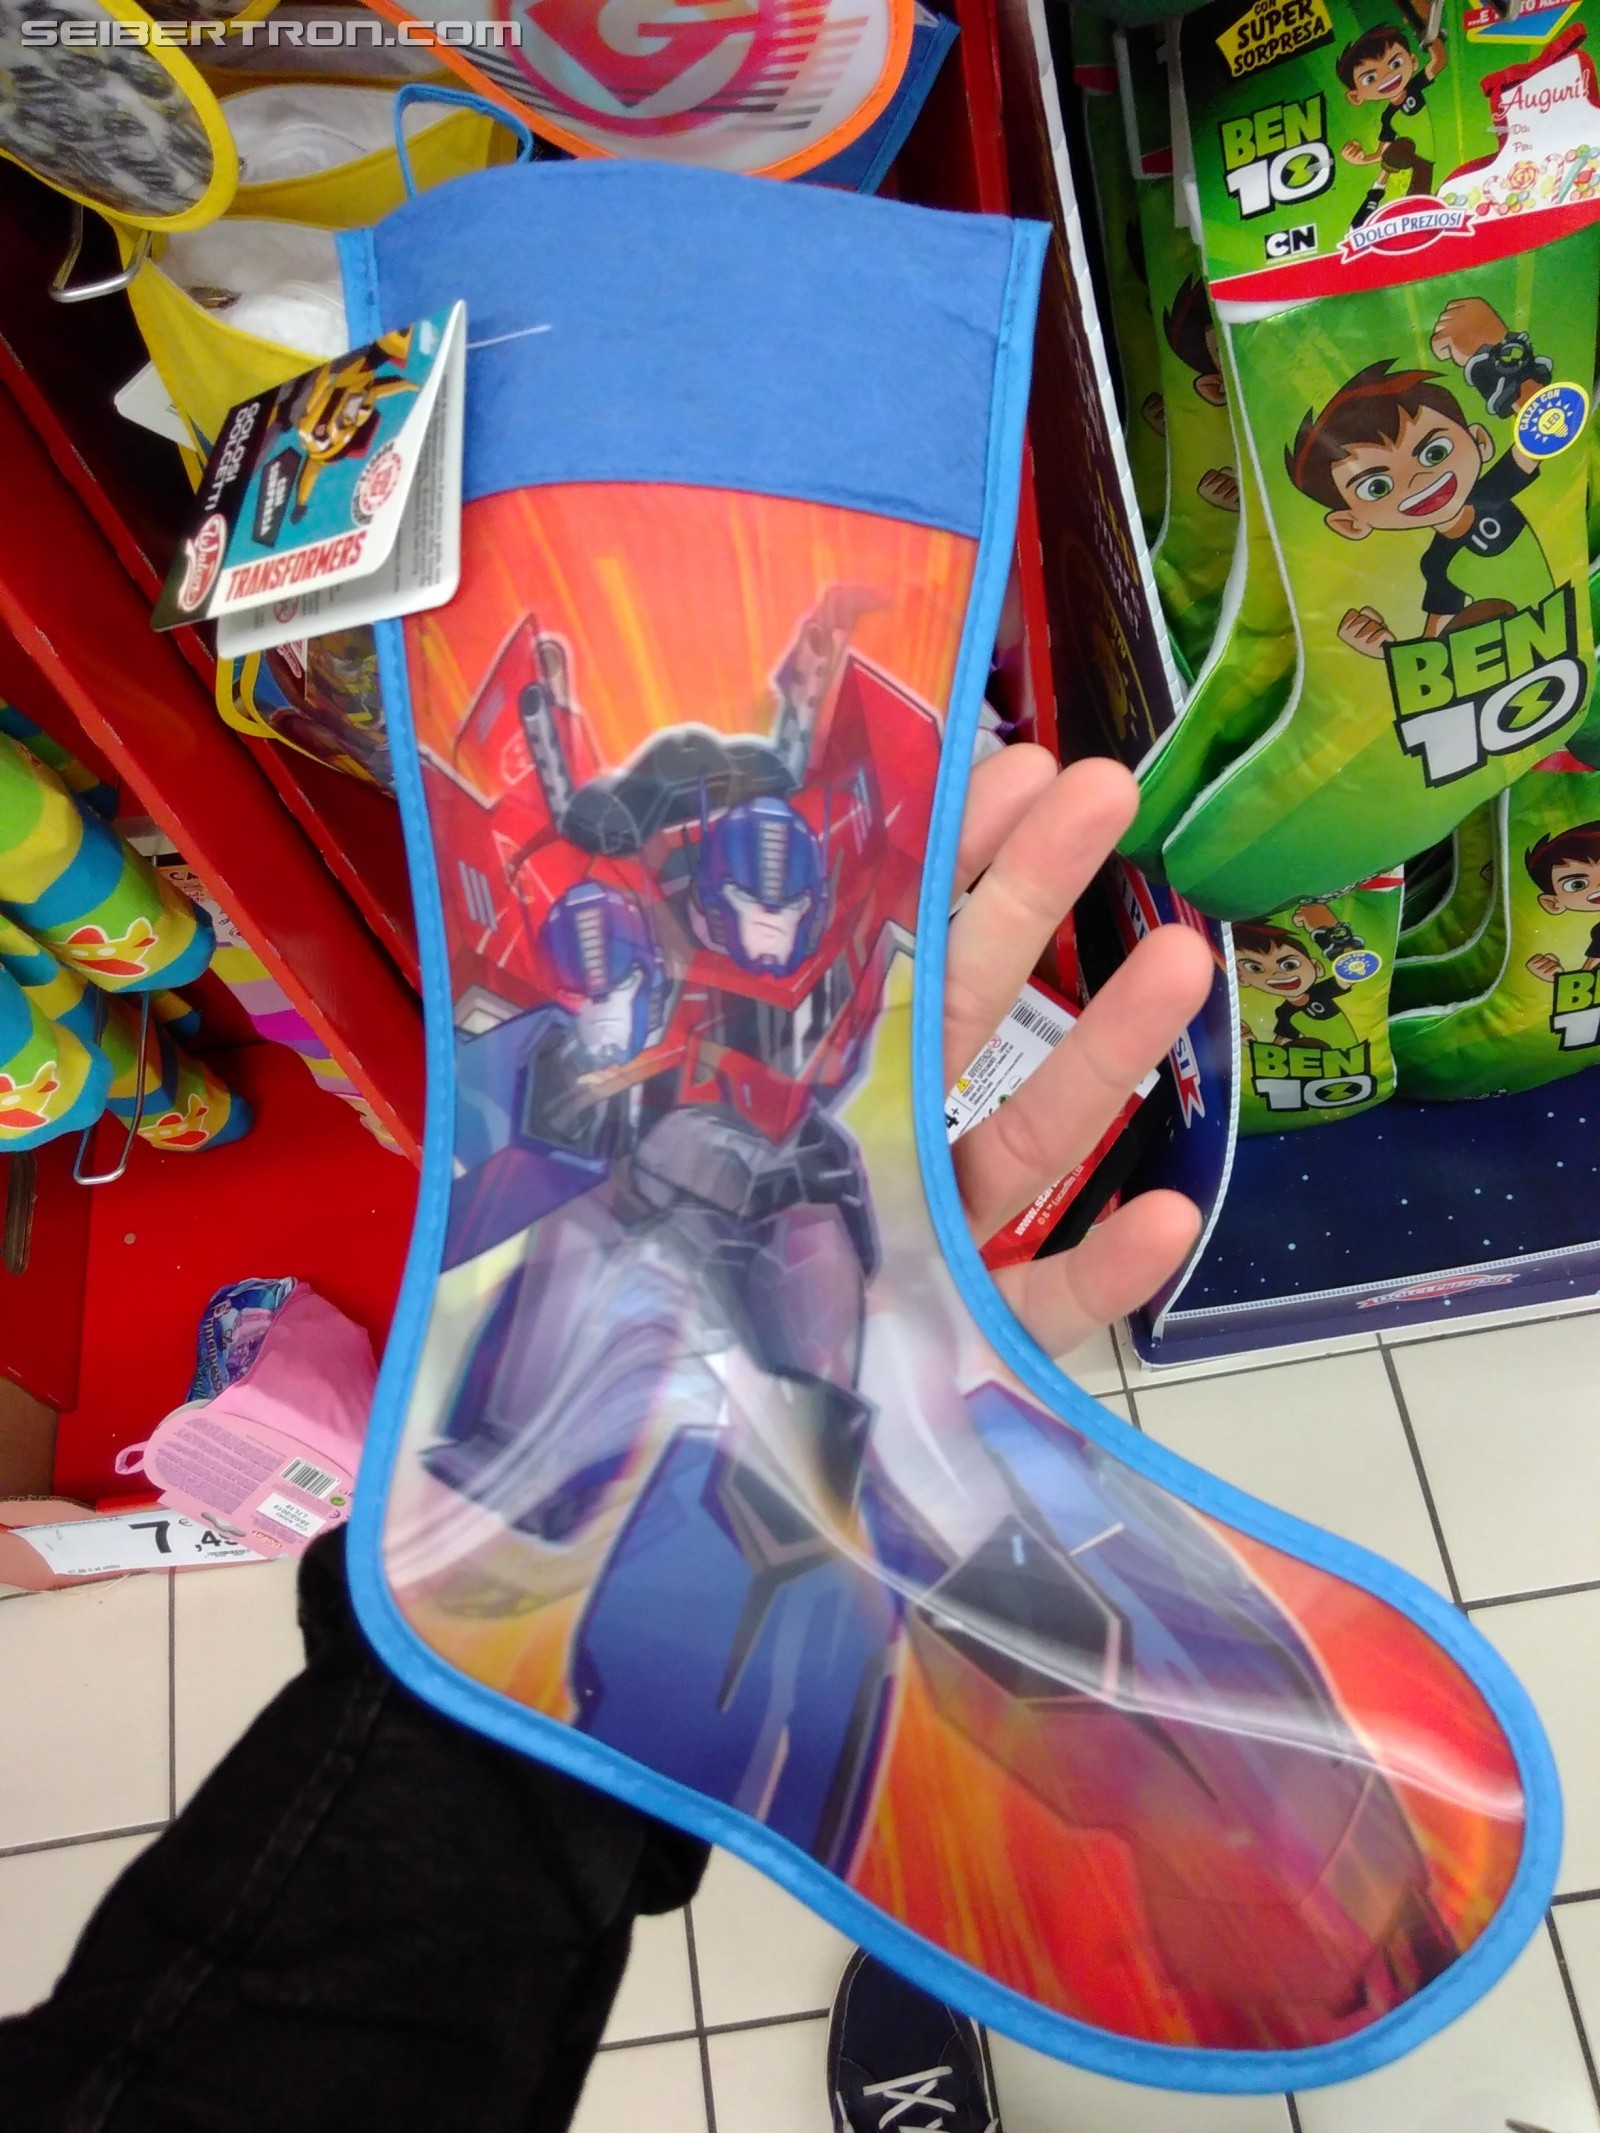 Transformers News: Transformers: Robots in Disguise Befana Products in Italy